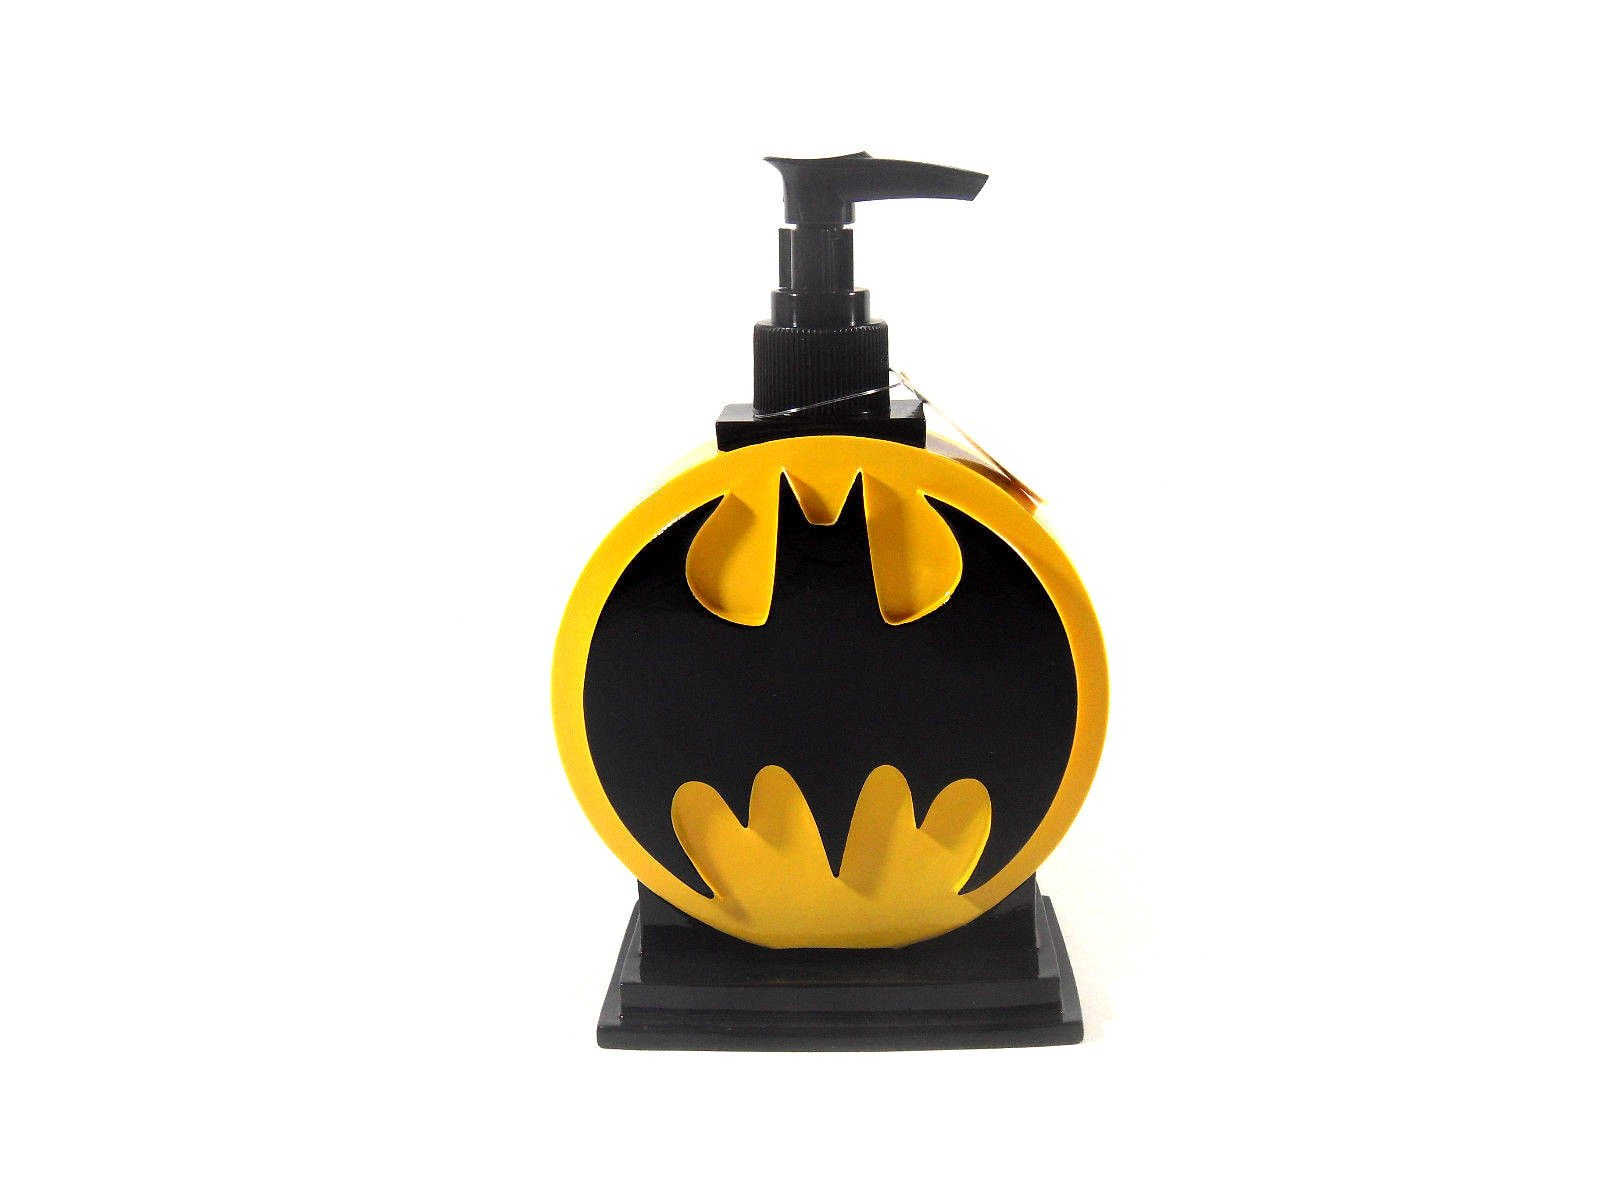 Batman Bathroom Set, Shower Curtain, Hooks, Bath Rug, Bath Towel, Pump Lotion, Toothbrush Holder by Batman (Image #3)